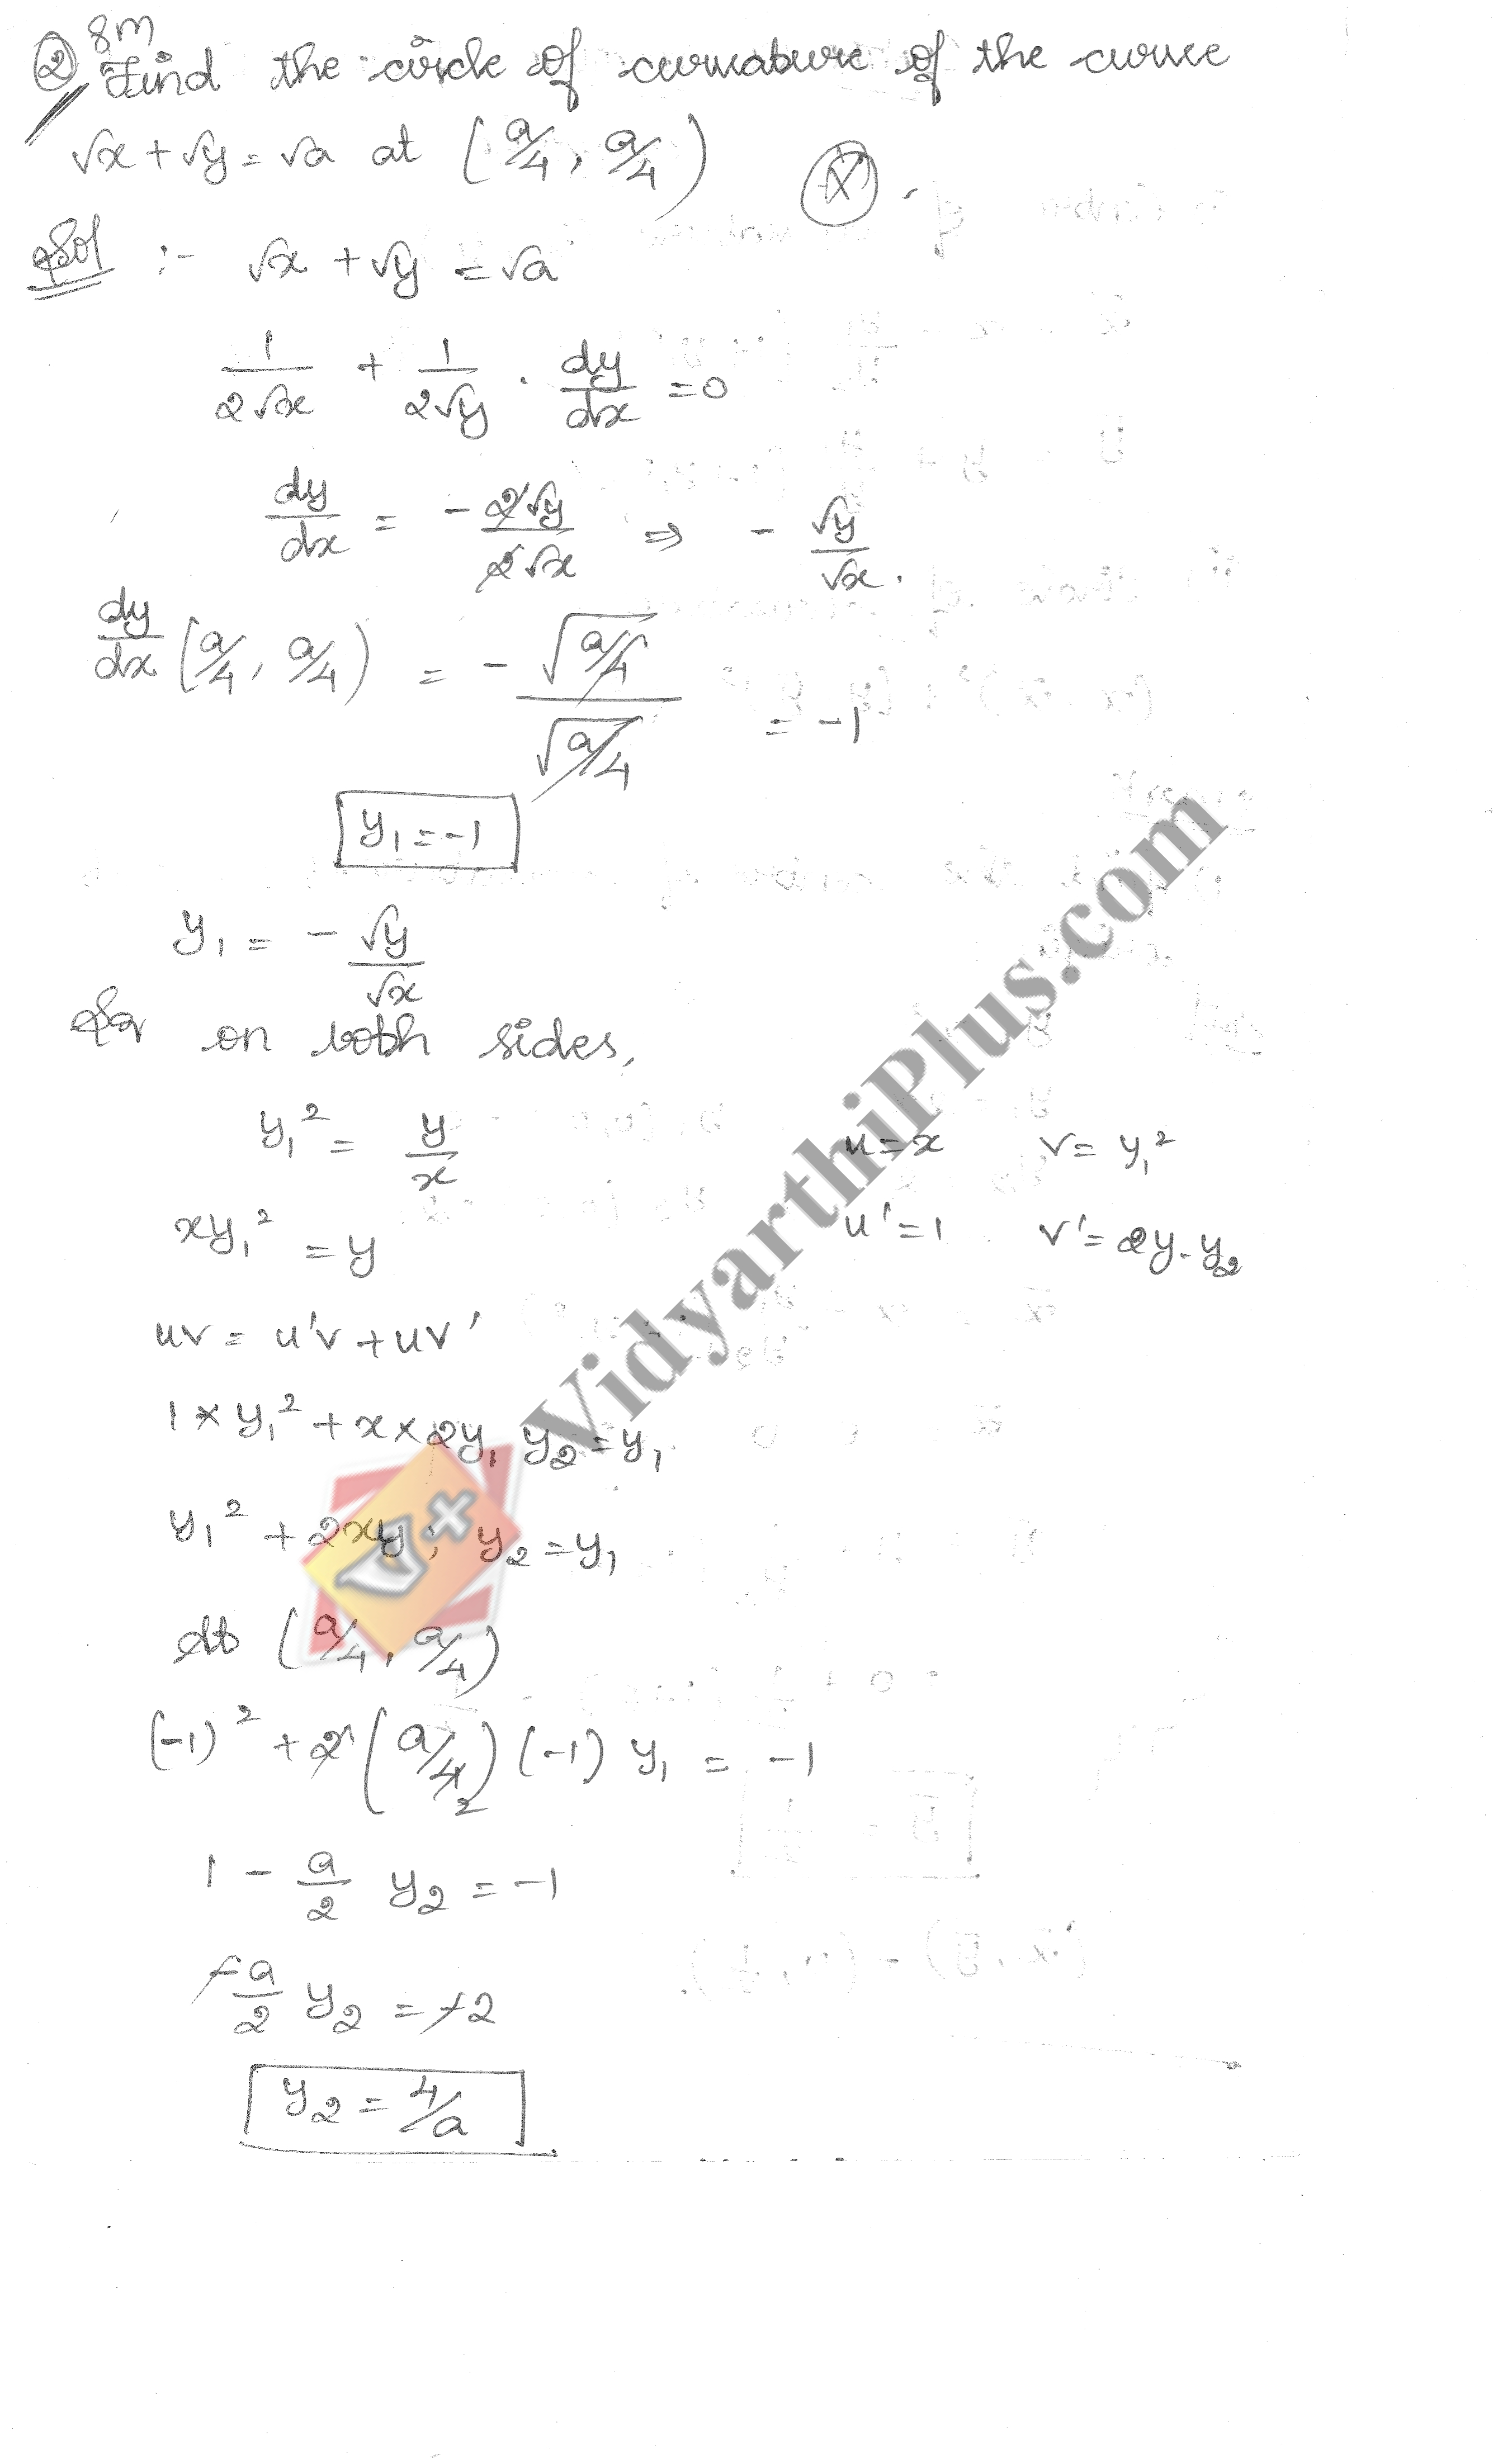 Engineering Mathematics - I (4th and 5th Unit) Premium Lecture Notes - Keerthana Edition